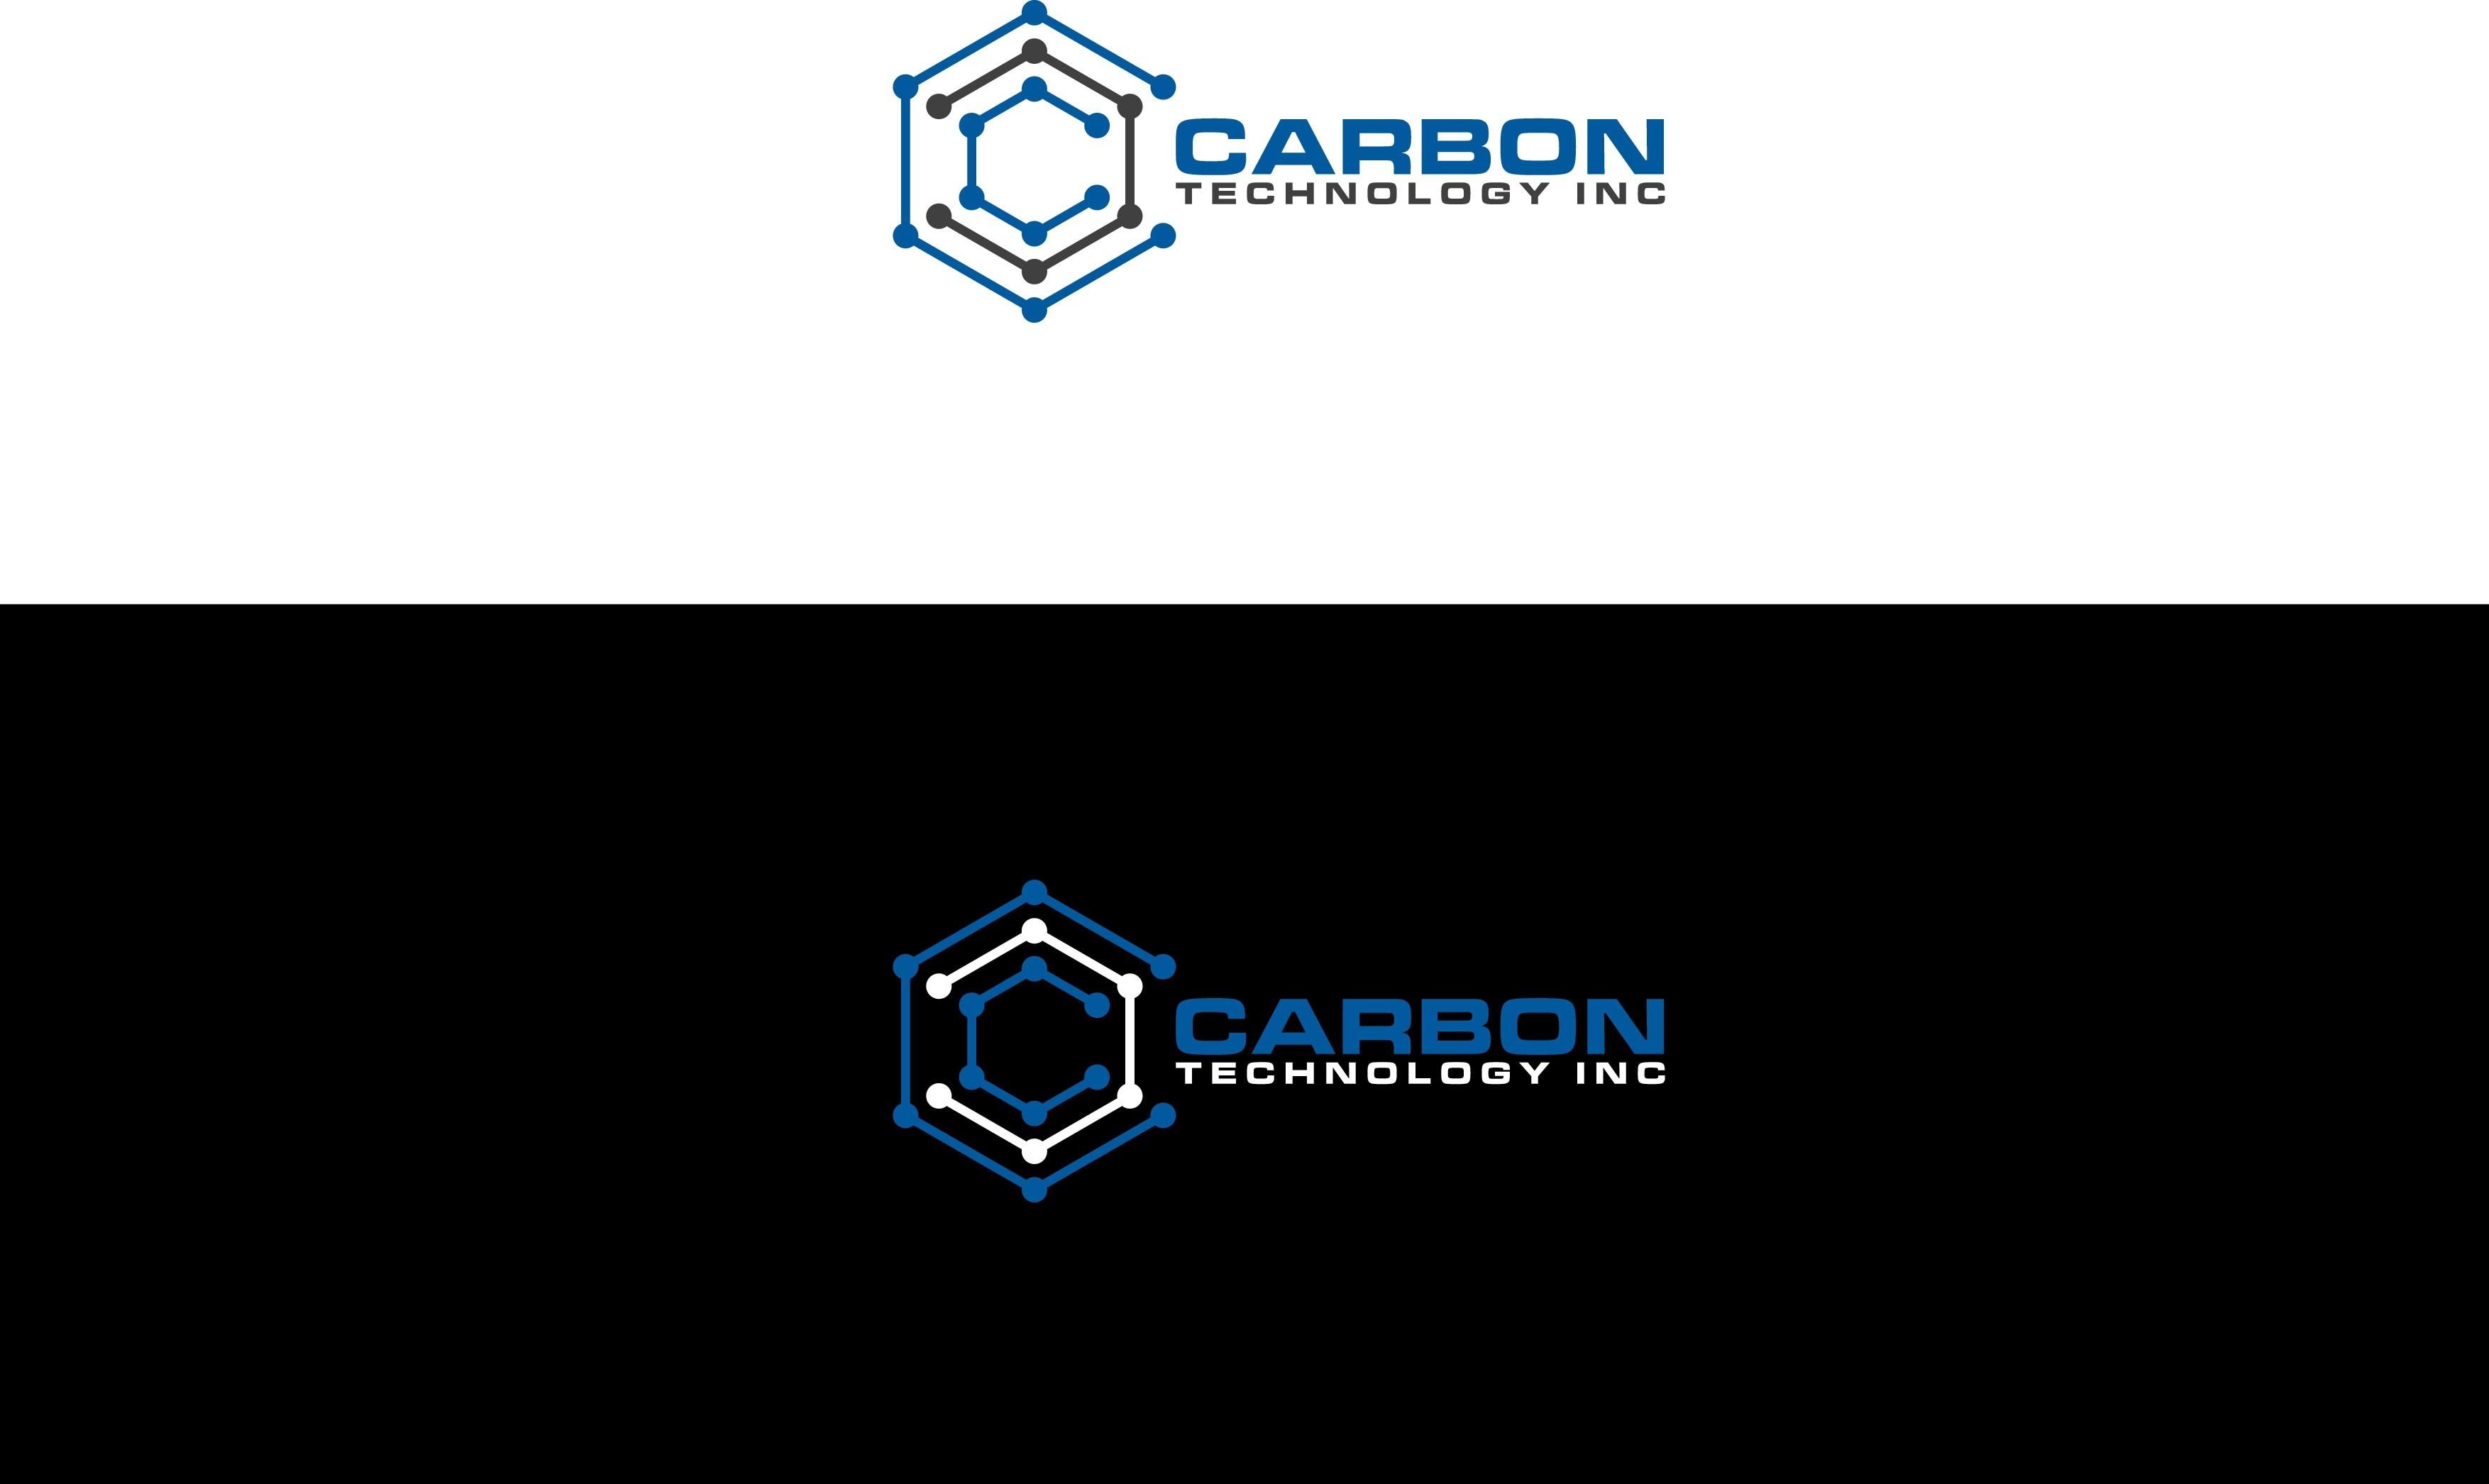 Logo for the next Intel (a world based on Carbon Electronics)